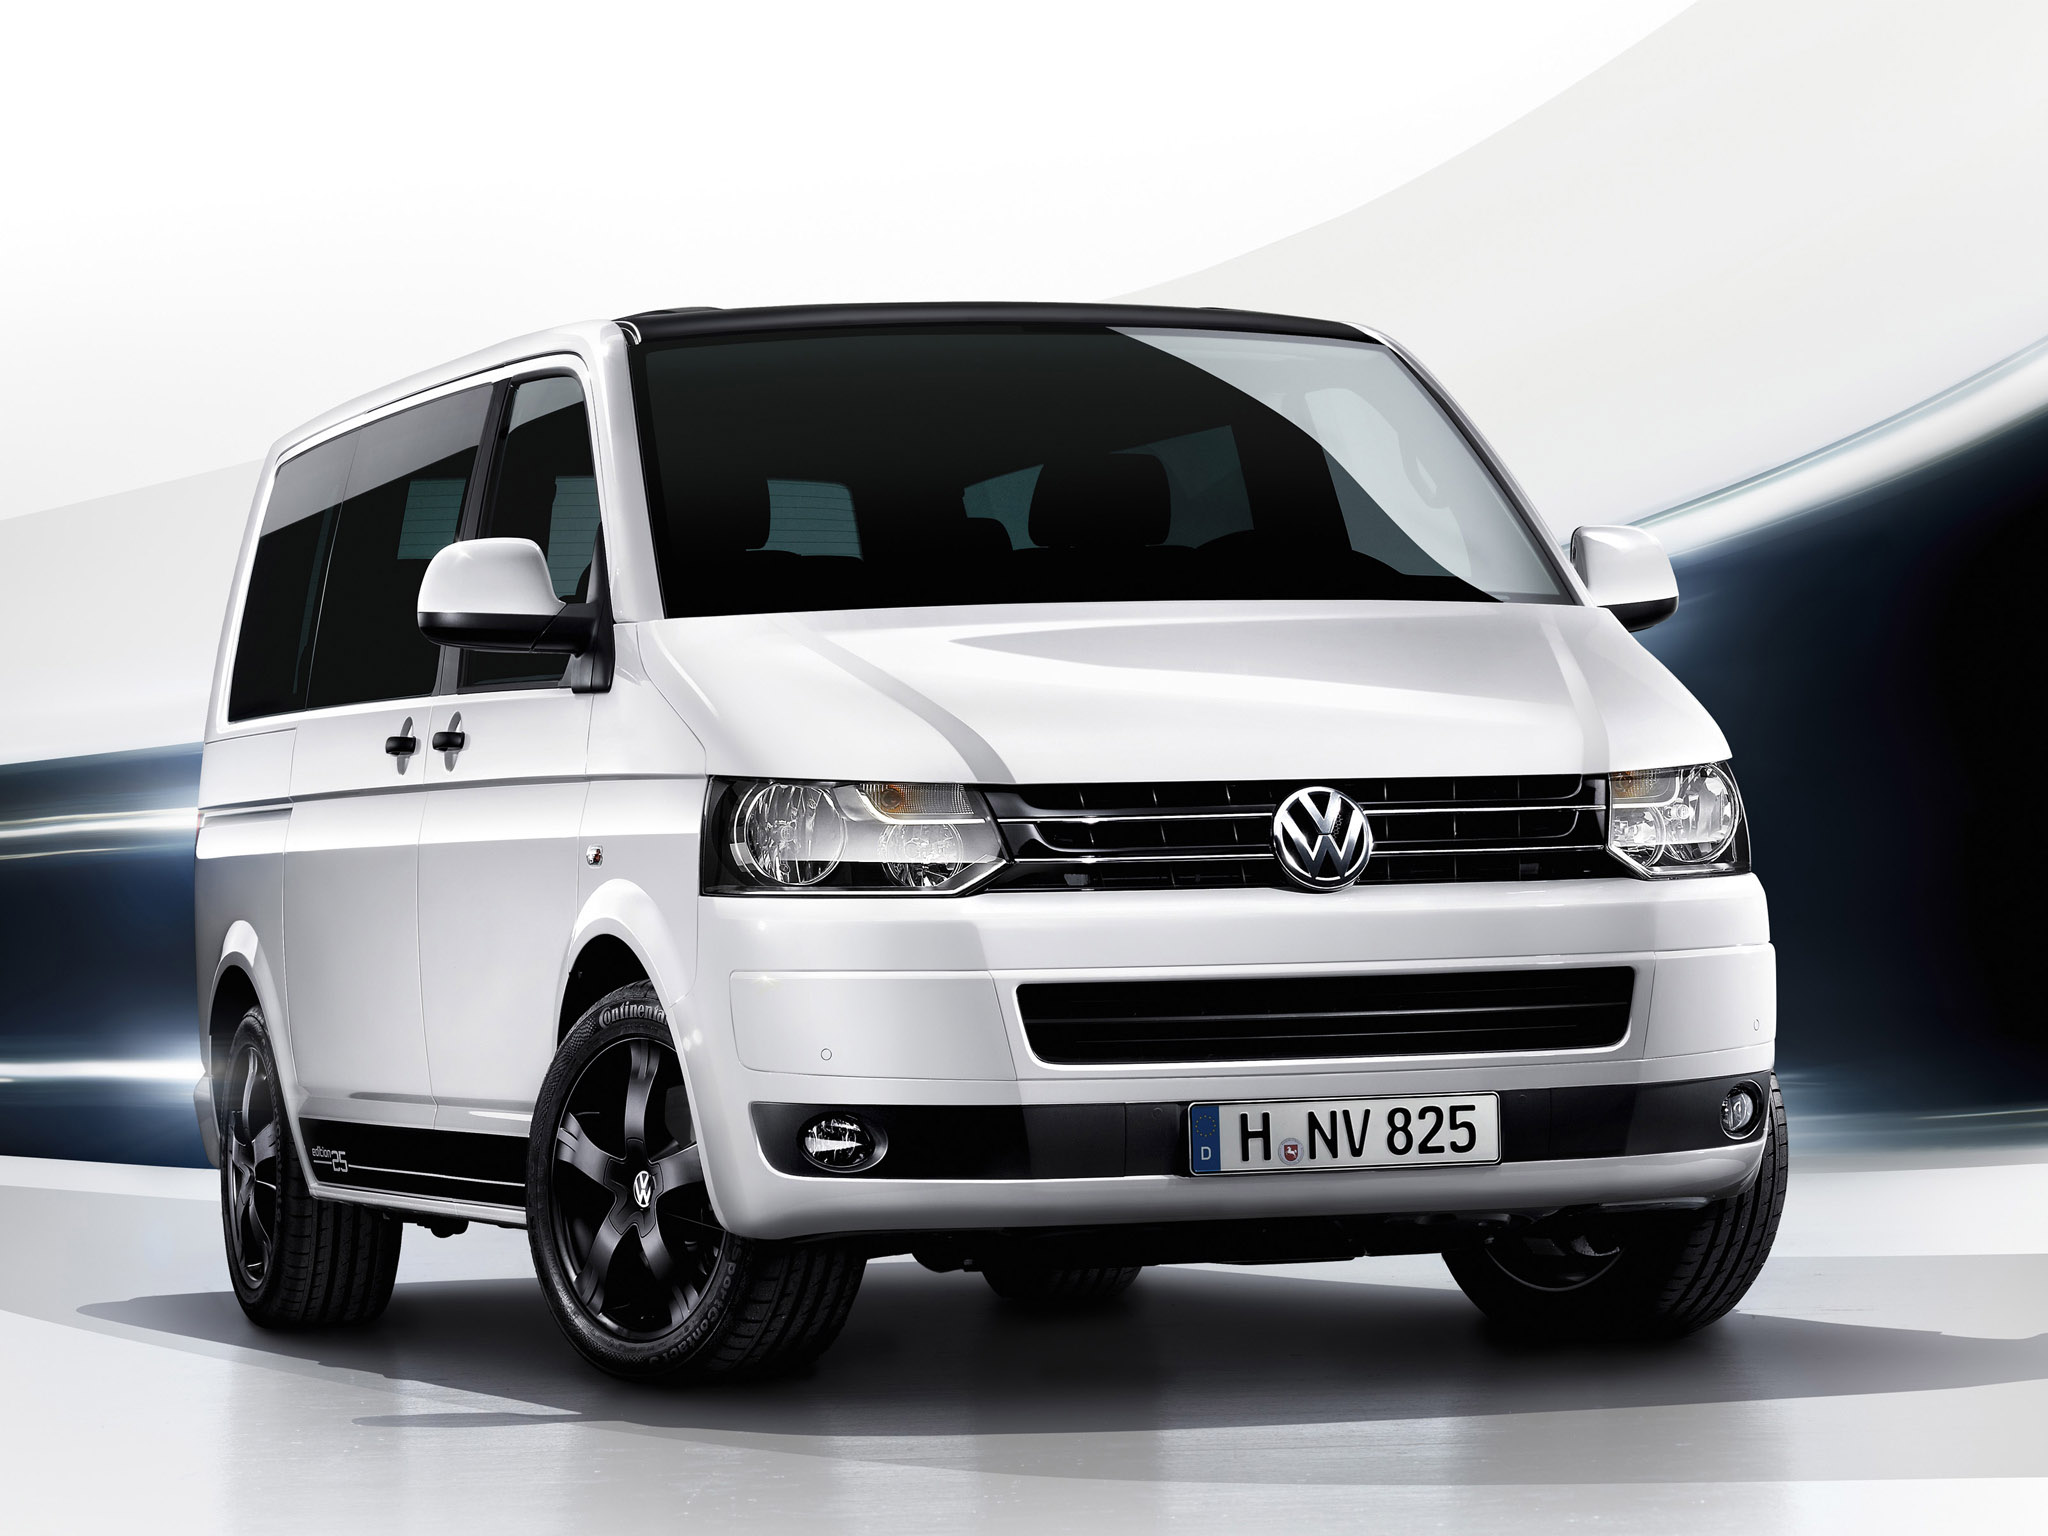 volkswagen t5 multivan edition 25 2010 volkswagen t5. Black Bedroom Furniture Sets. Home Design Ideas